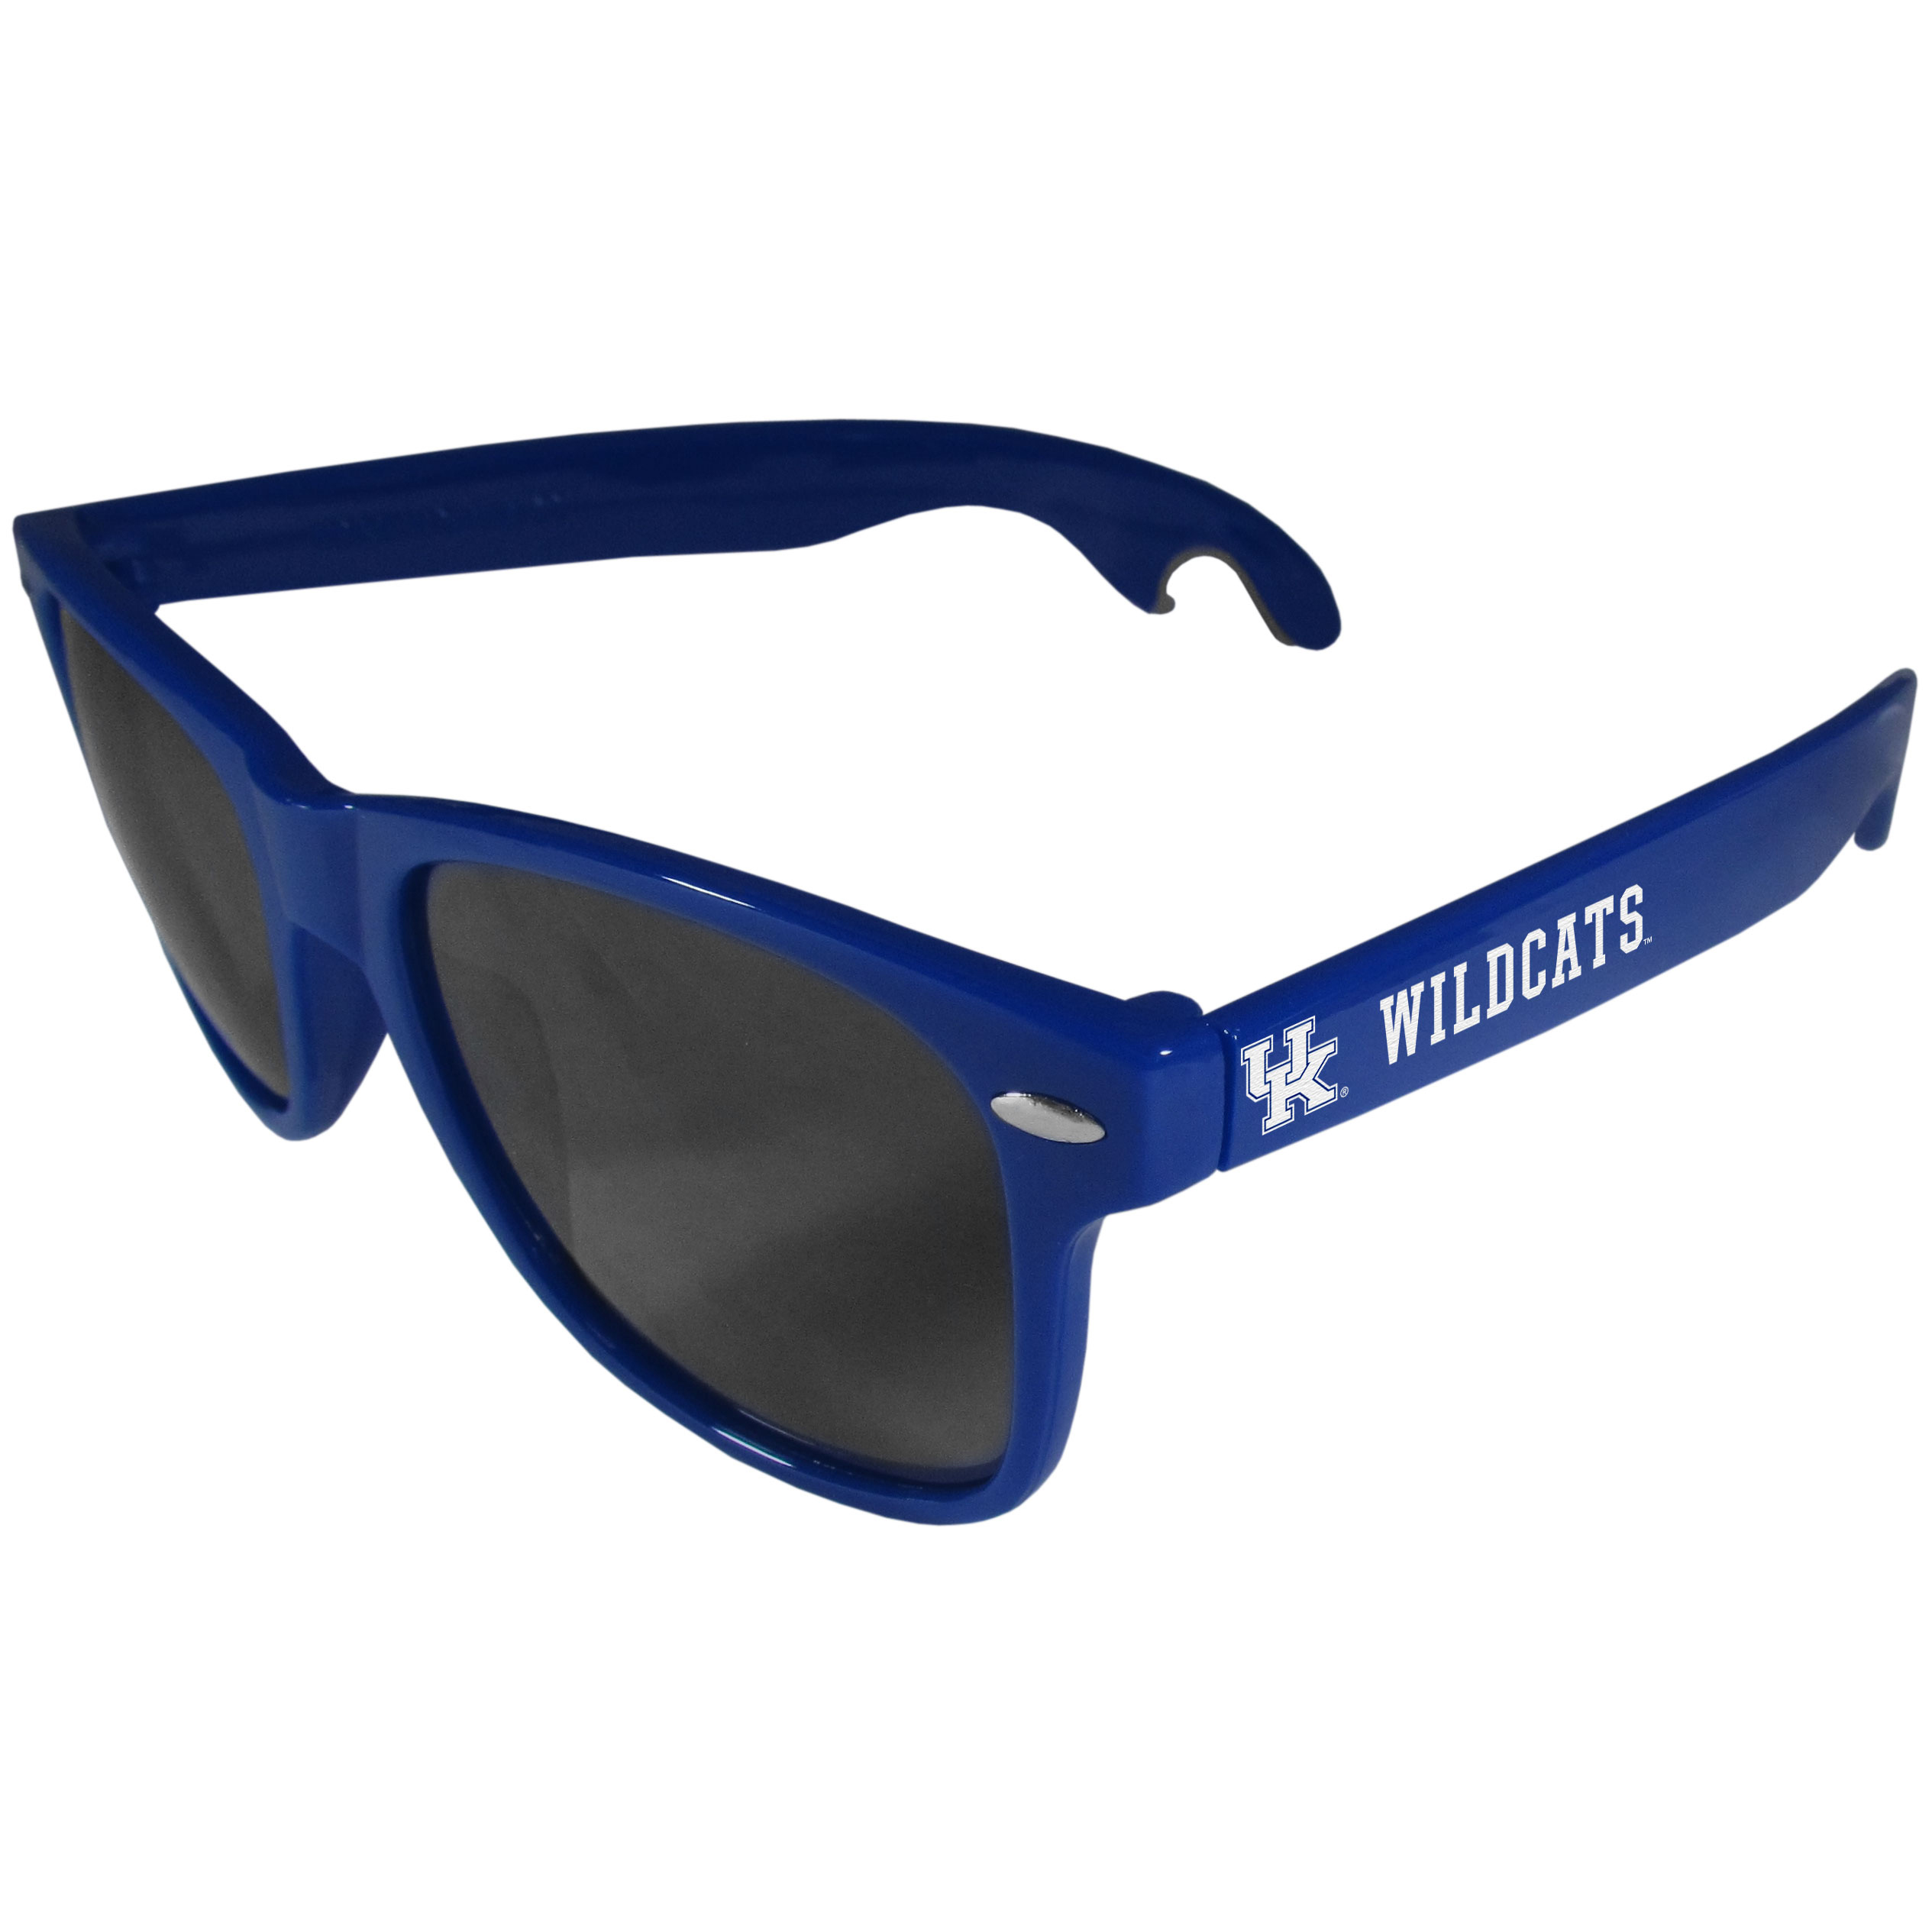 Kentucky Wildcats Beachfarer Bottle Opener Sunglasses, Blue - Seriously, these sunglasses open bottles! Keep the party going with these amazing Kentucky Wildcats bottle opener sunglasses. The stylish retro frames feature team designs on the arms and functional bottle openers on the end of the arms. Whether you are at the beach or having a backyard BBQ on game day, these shades will keep your eyes protected with 100% UVA/UVB protection and keep you hydrated with the handy bottle opener arms.